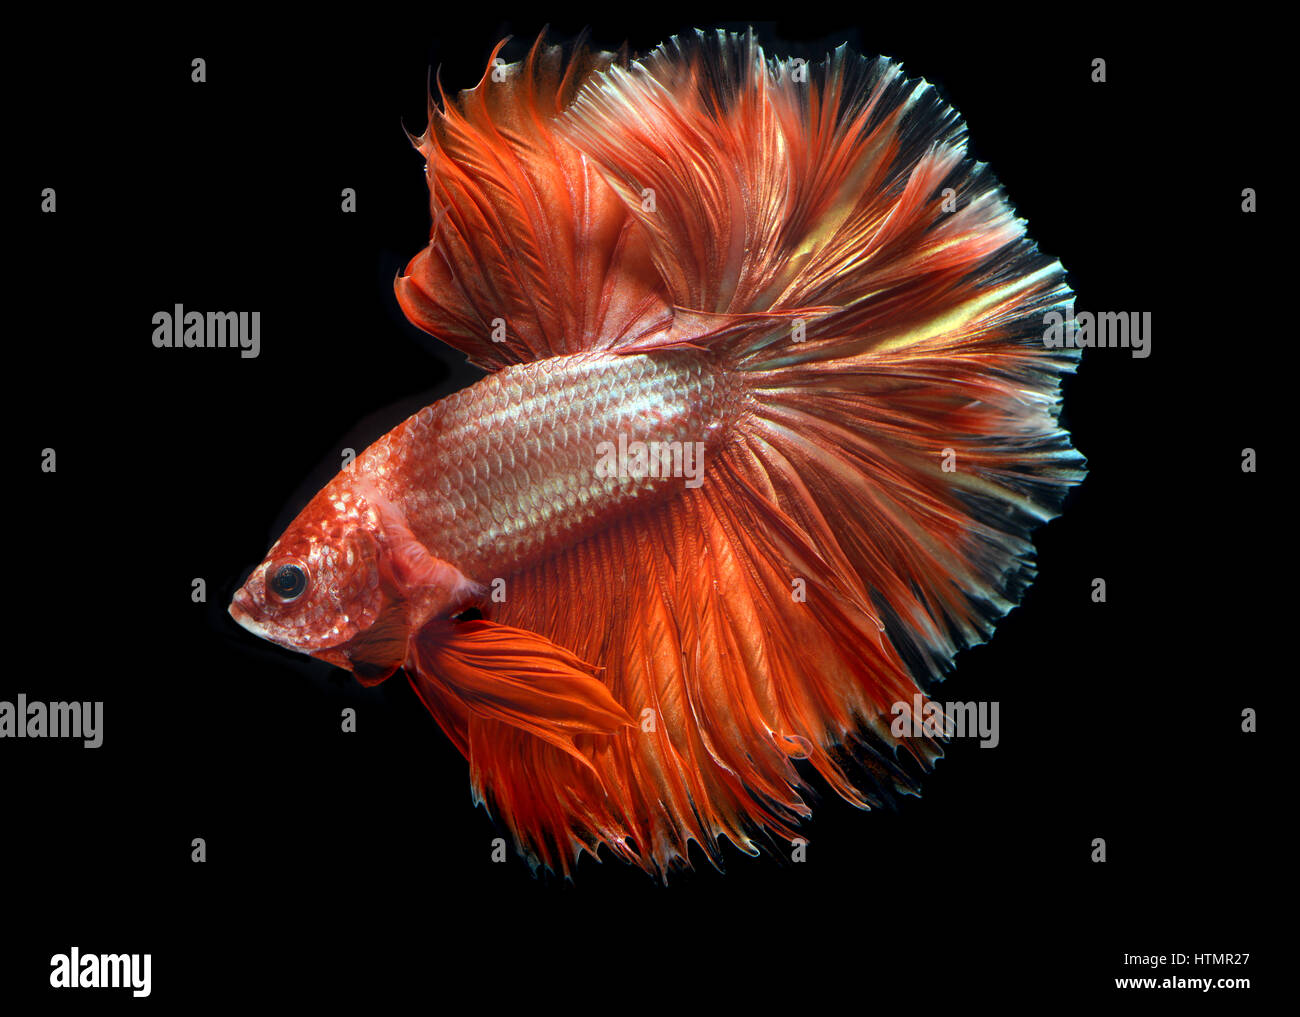 Golden red Colorful waver of Betta Saimese fighting fish beauty and ...